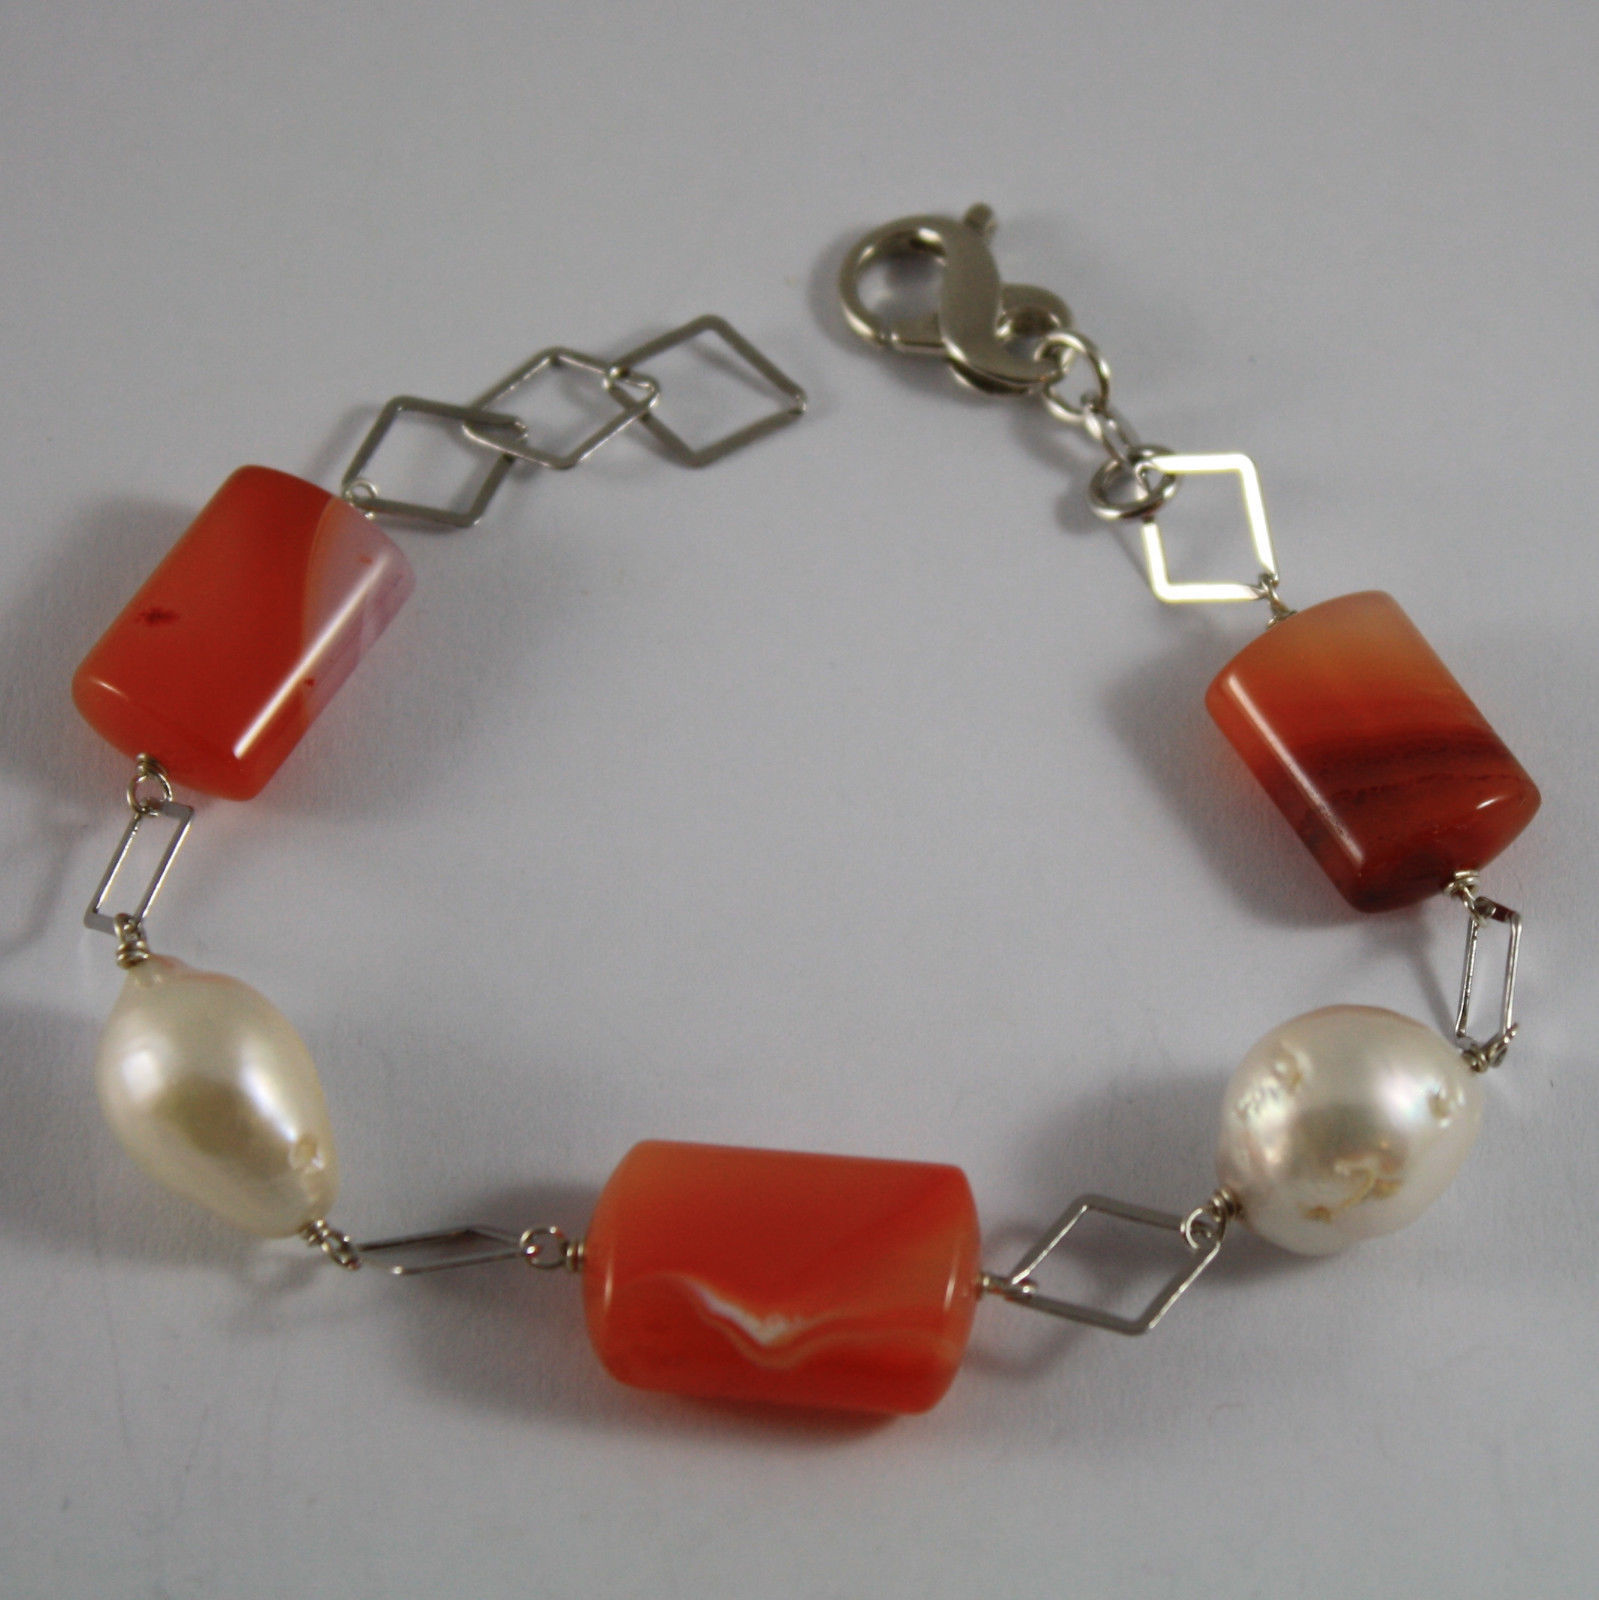 .925 RHODIUM SILVER BRACELET WITH BAROQUE WHITE PEARLS AND ORANGE AGATE